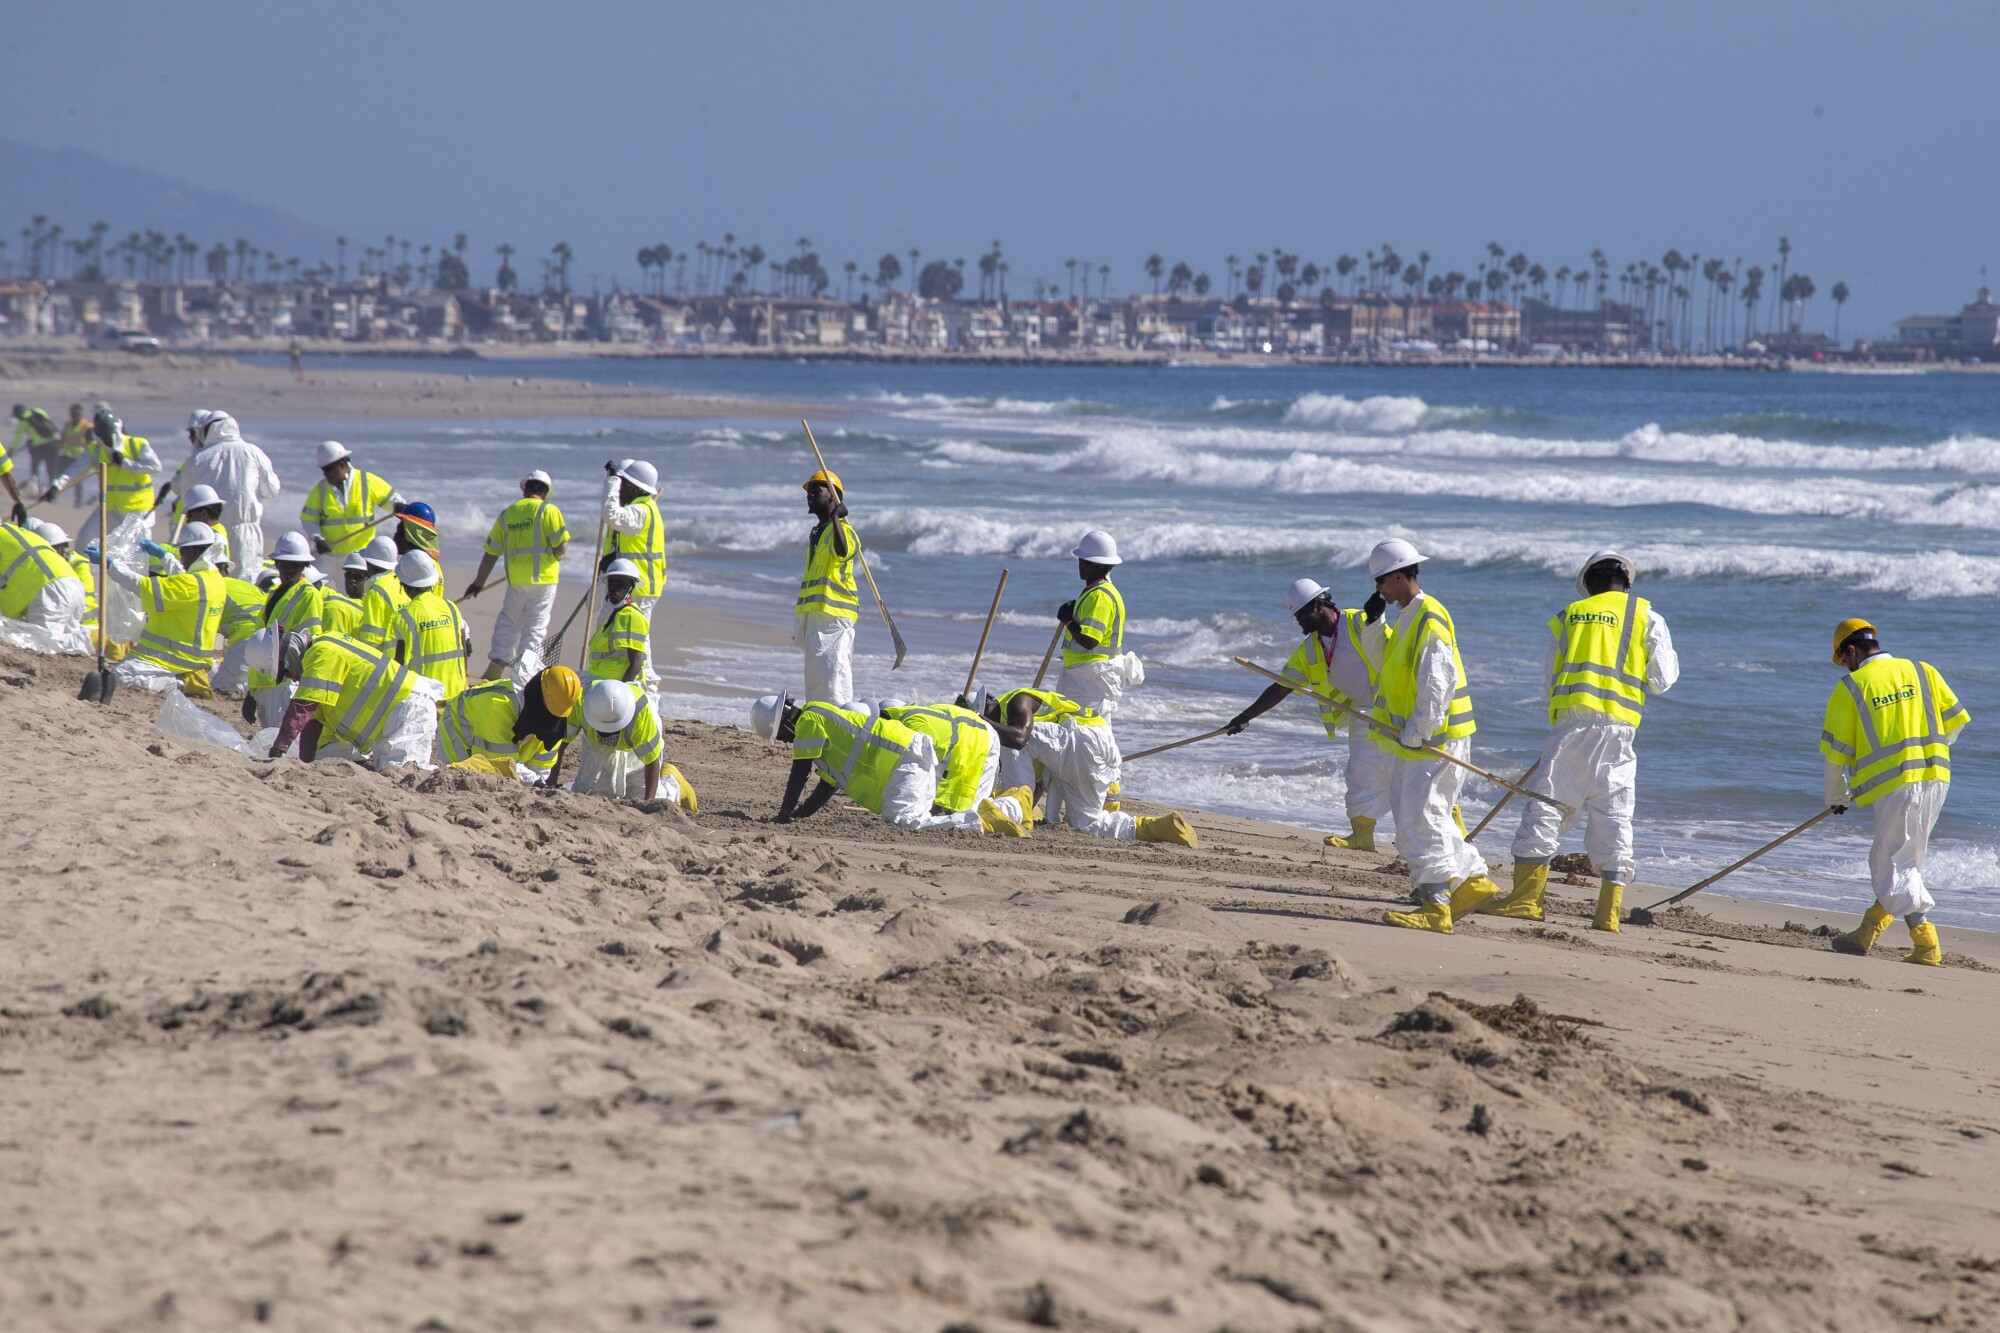 Oil spill cleanup crew members from New Jersey clean up the oil spill at Huntington State Beach on Oct. 10.